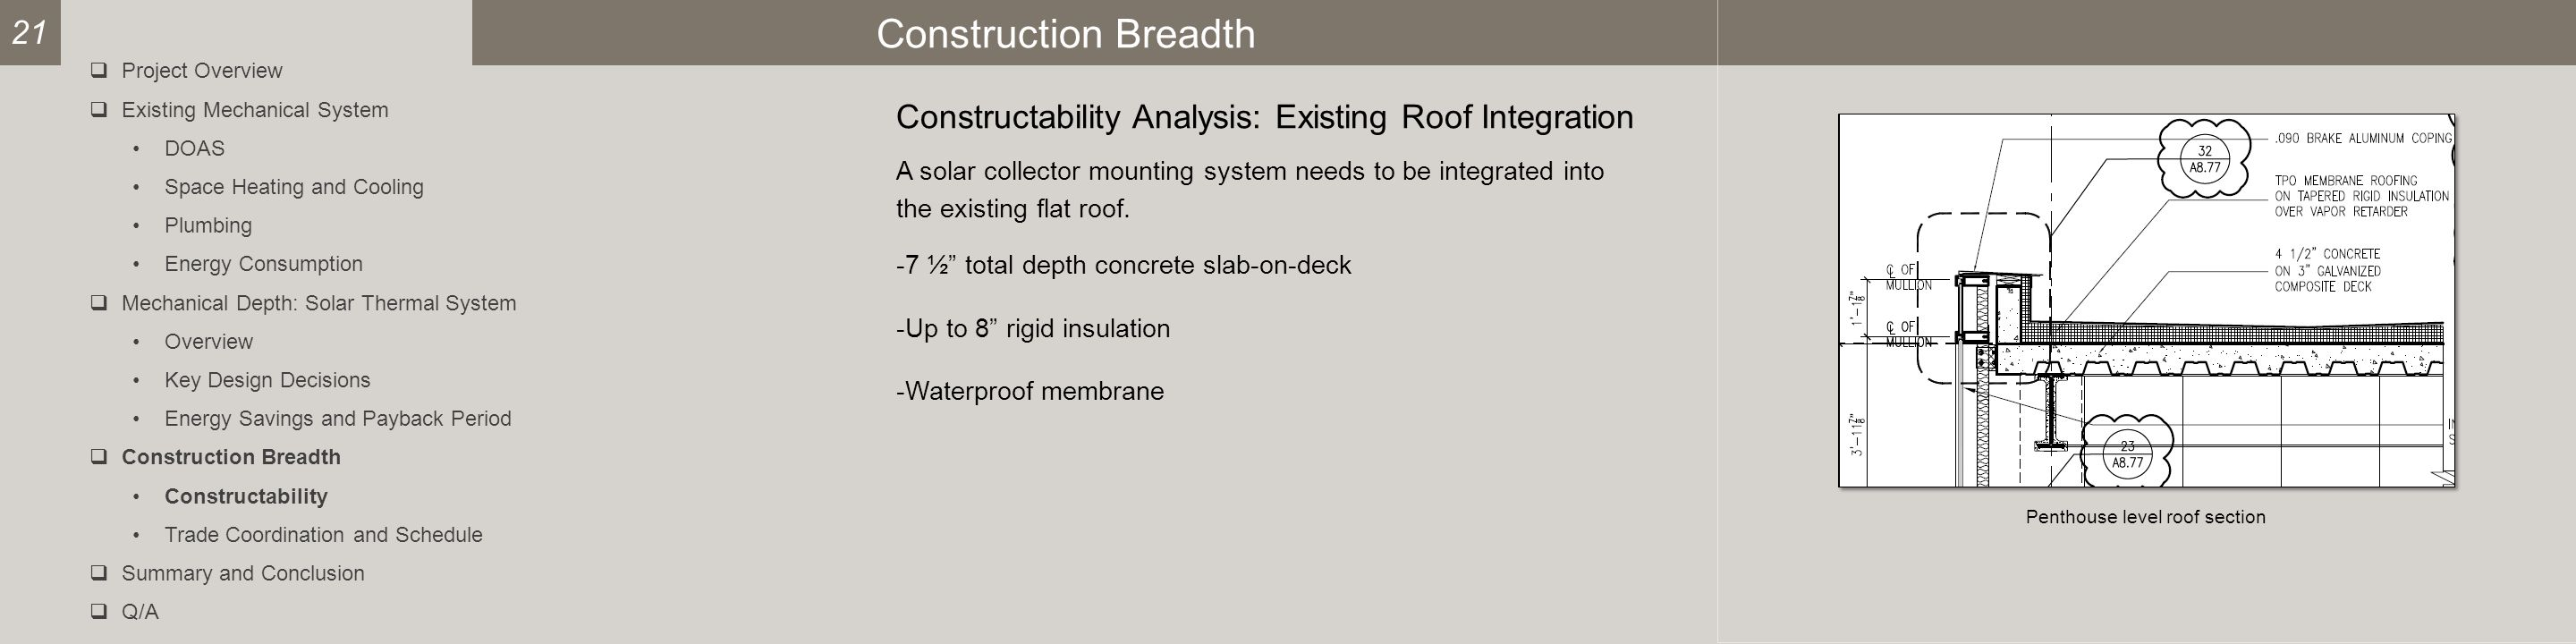 Construction Breadth Constructability Analysis: Existing Roof Integration A solar collector mounting system needs to be integrated into the existing flat roof.